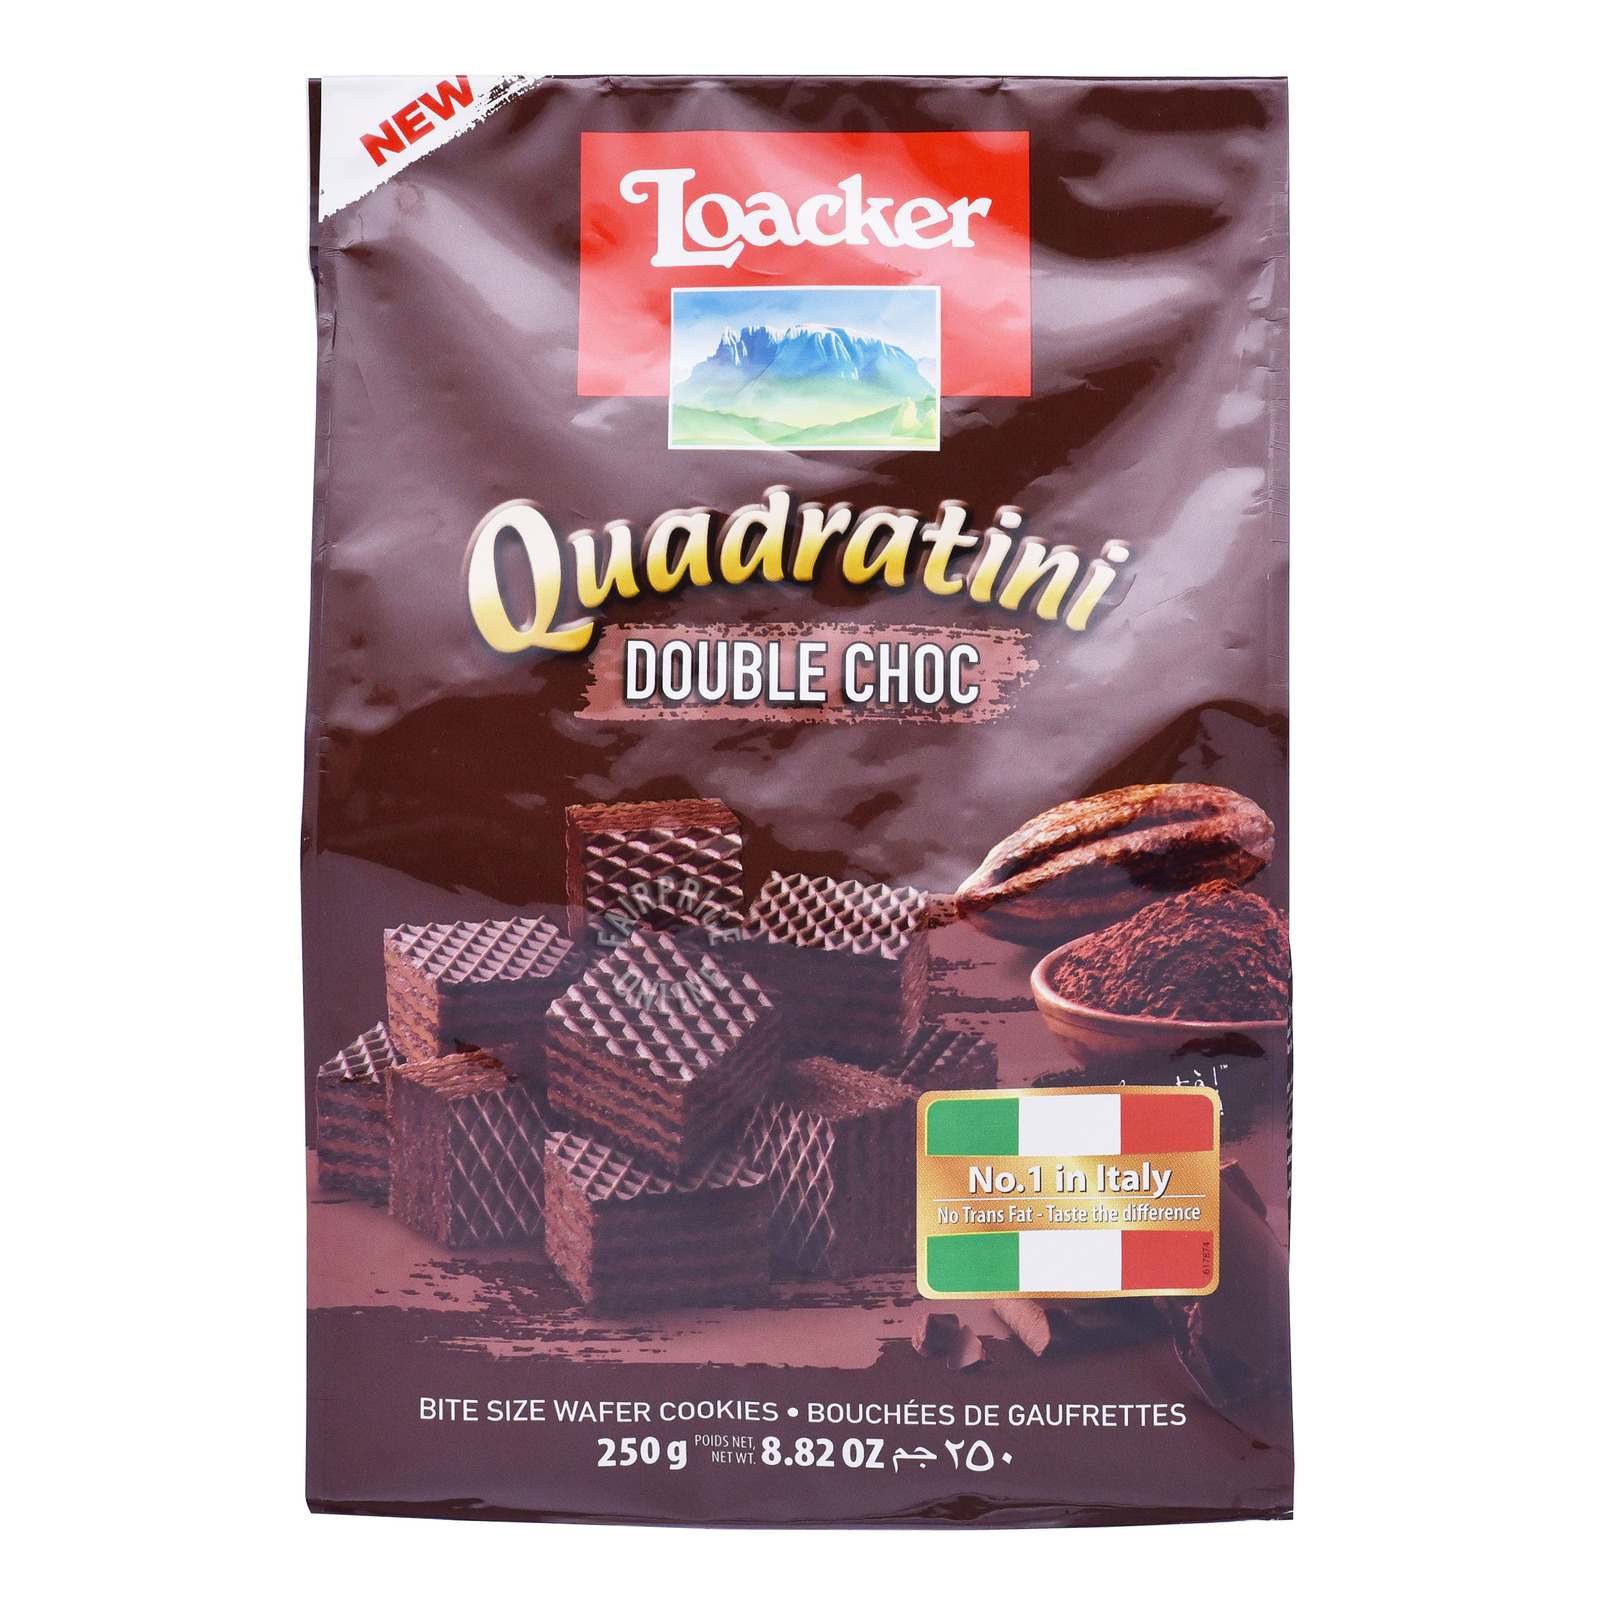 Loacker Quadratini Crispy Wafers - Double Choc